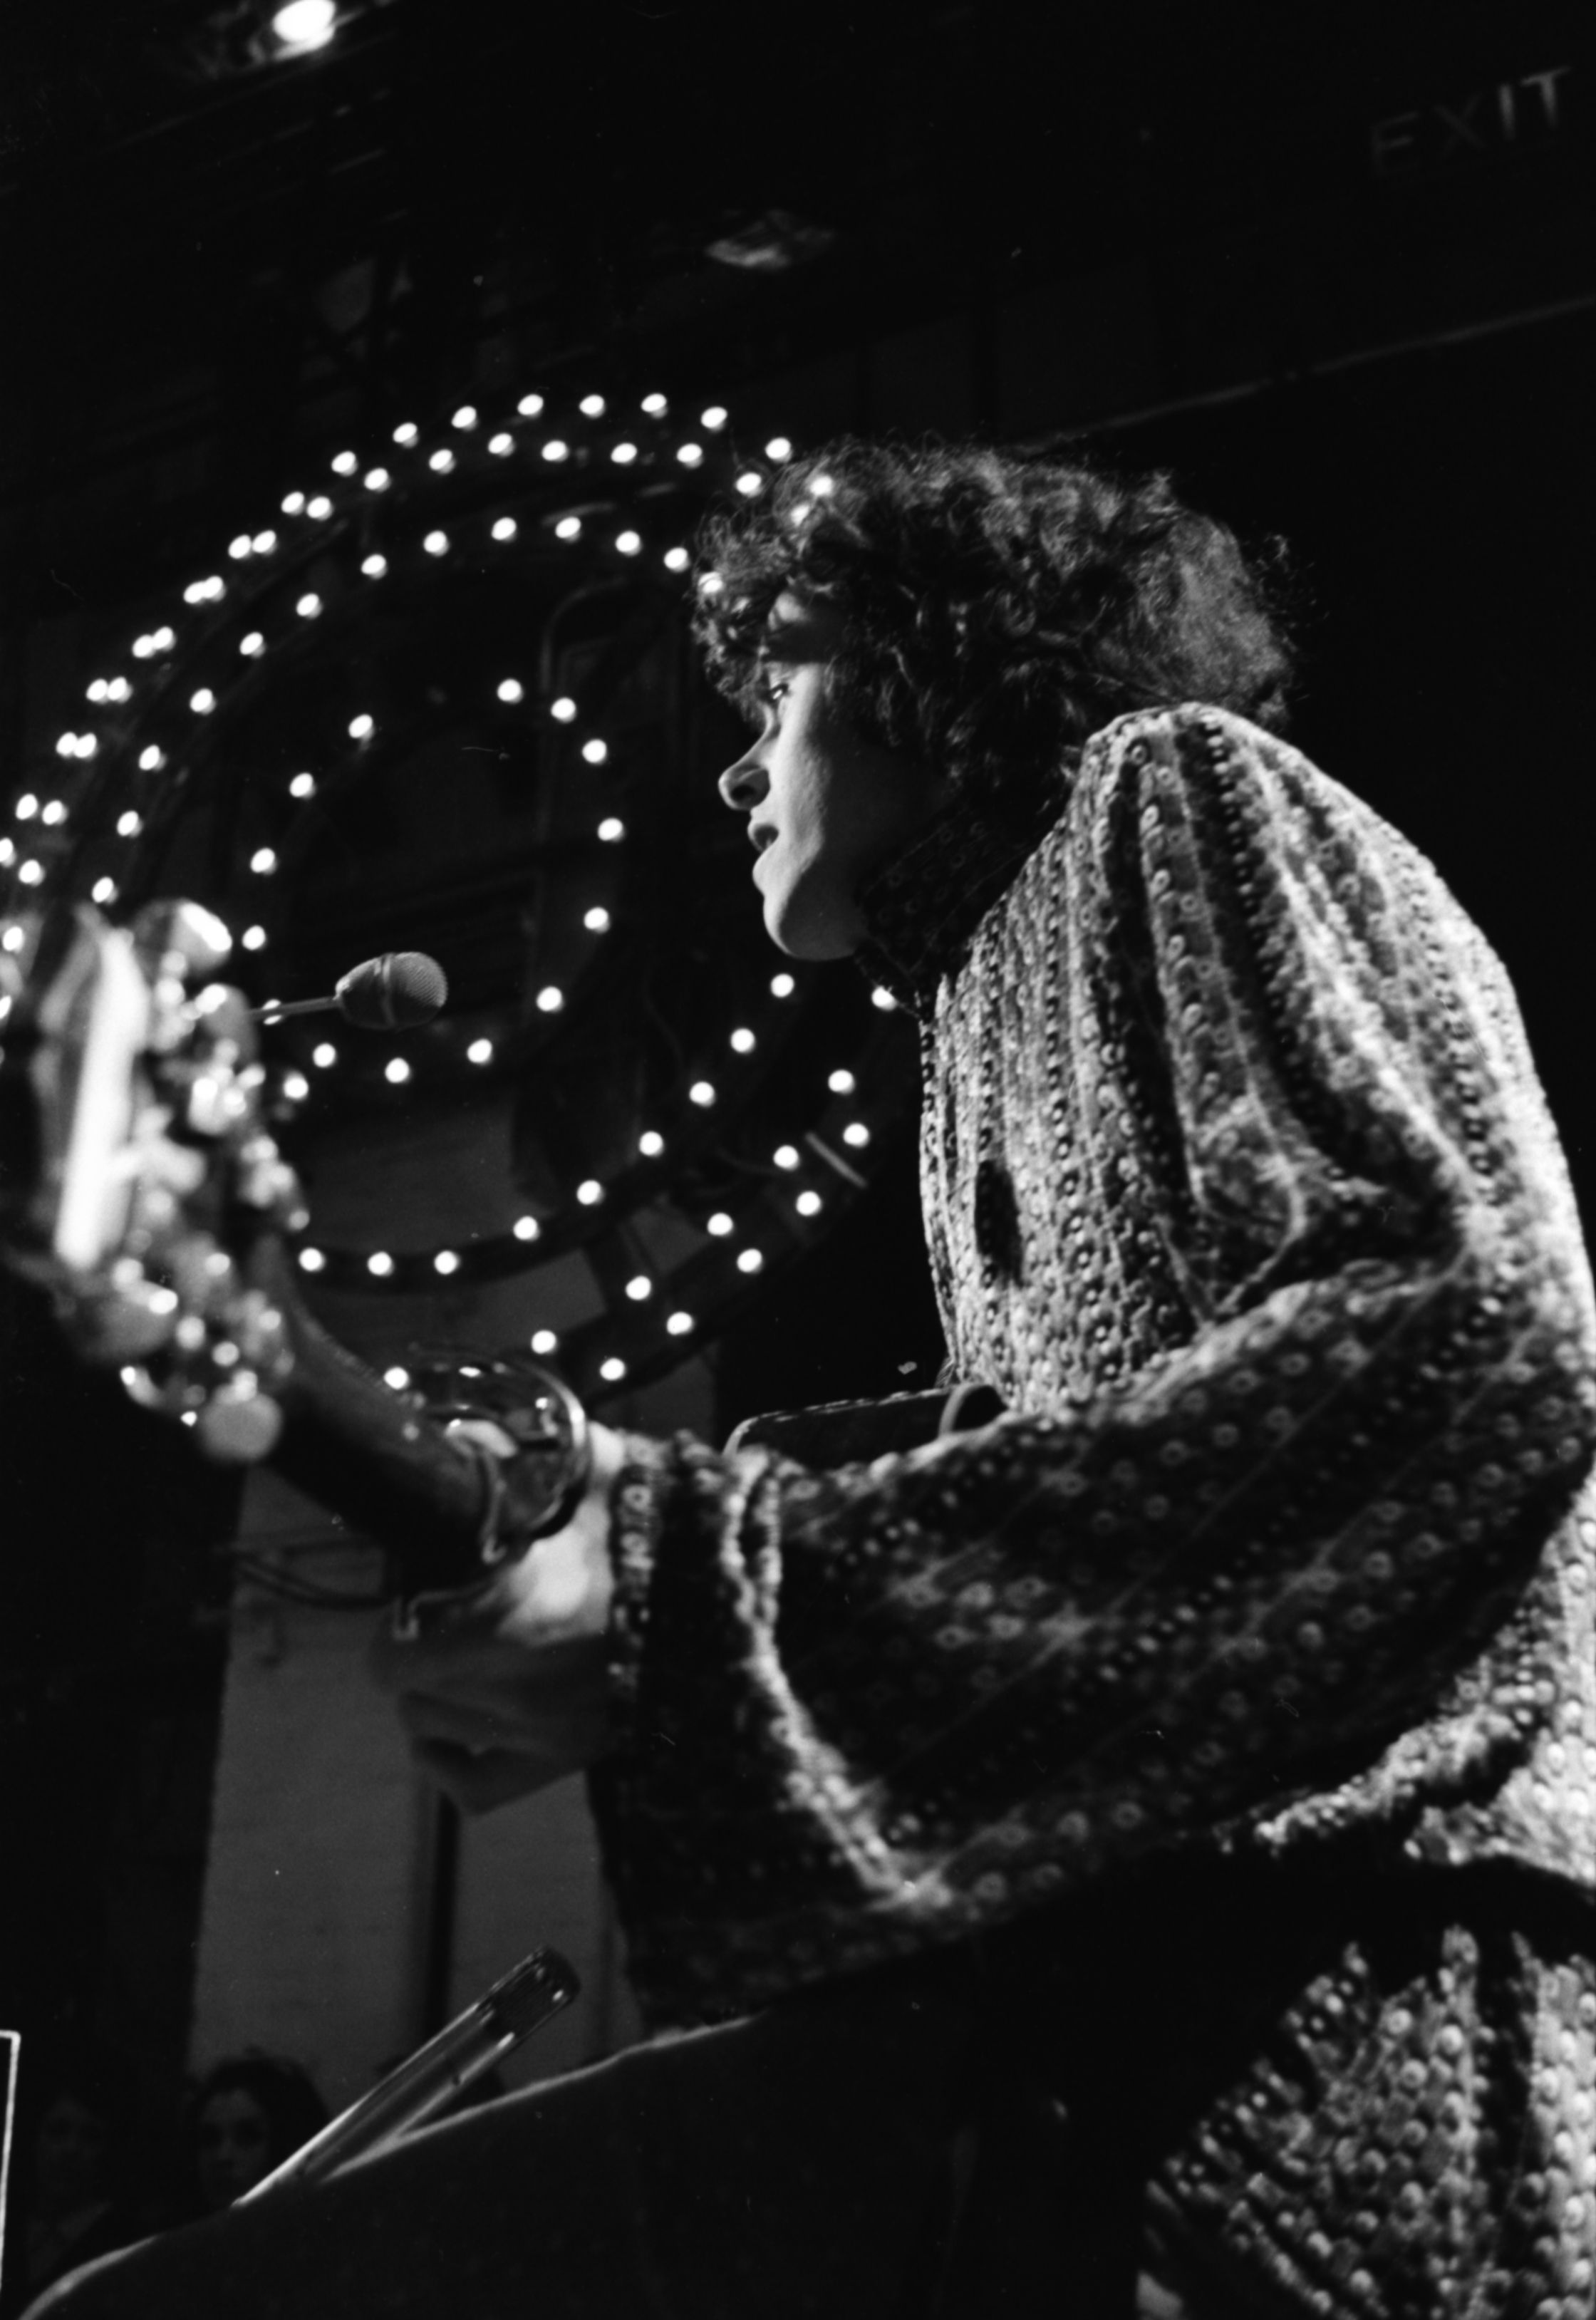 Donovan, BBC Top of the Pops. London 1968 Photo by Frank Habicht